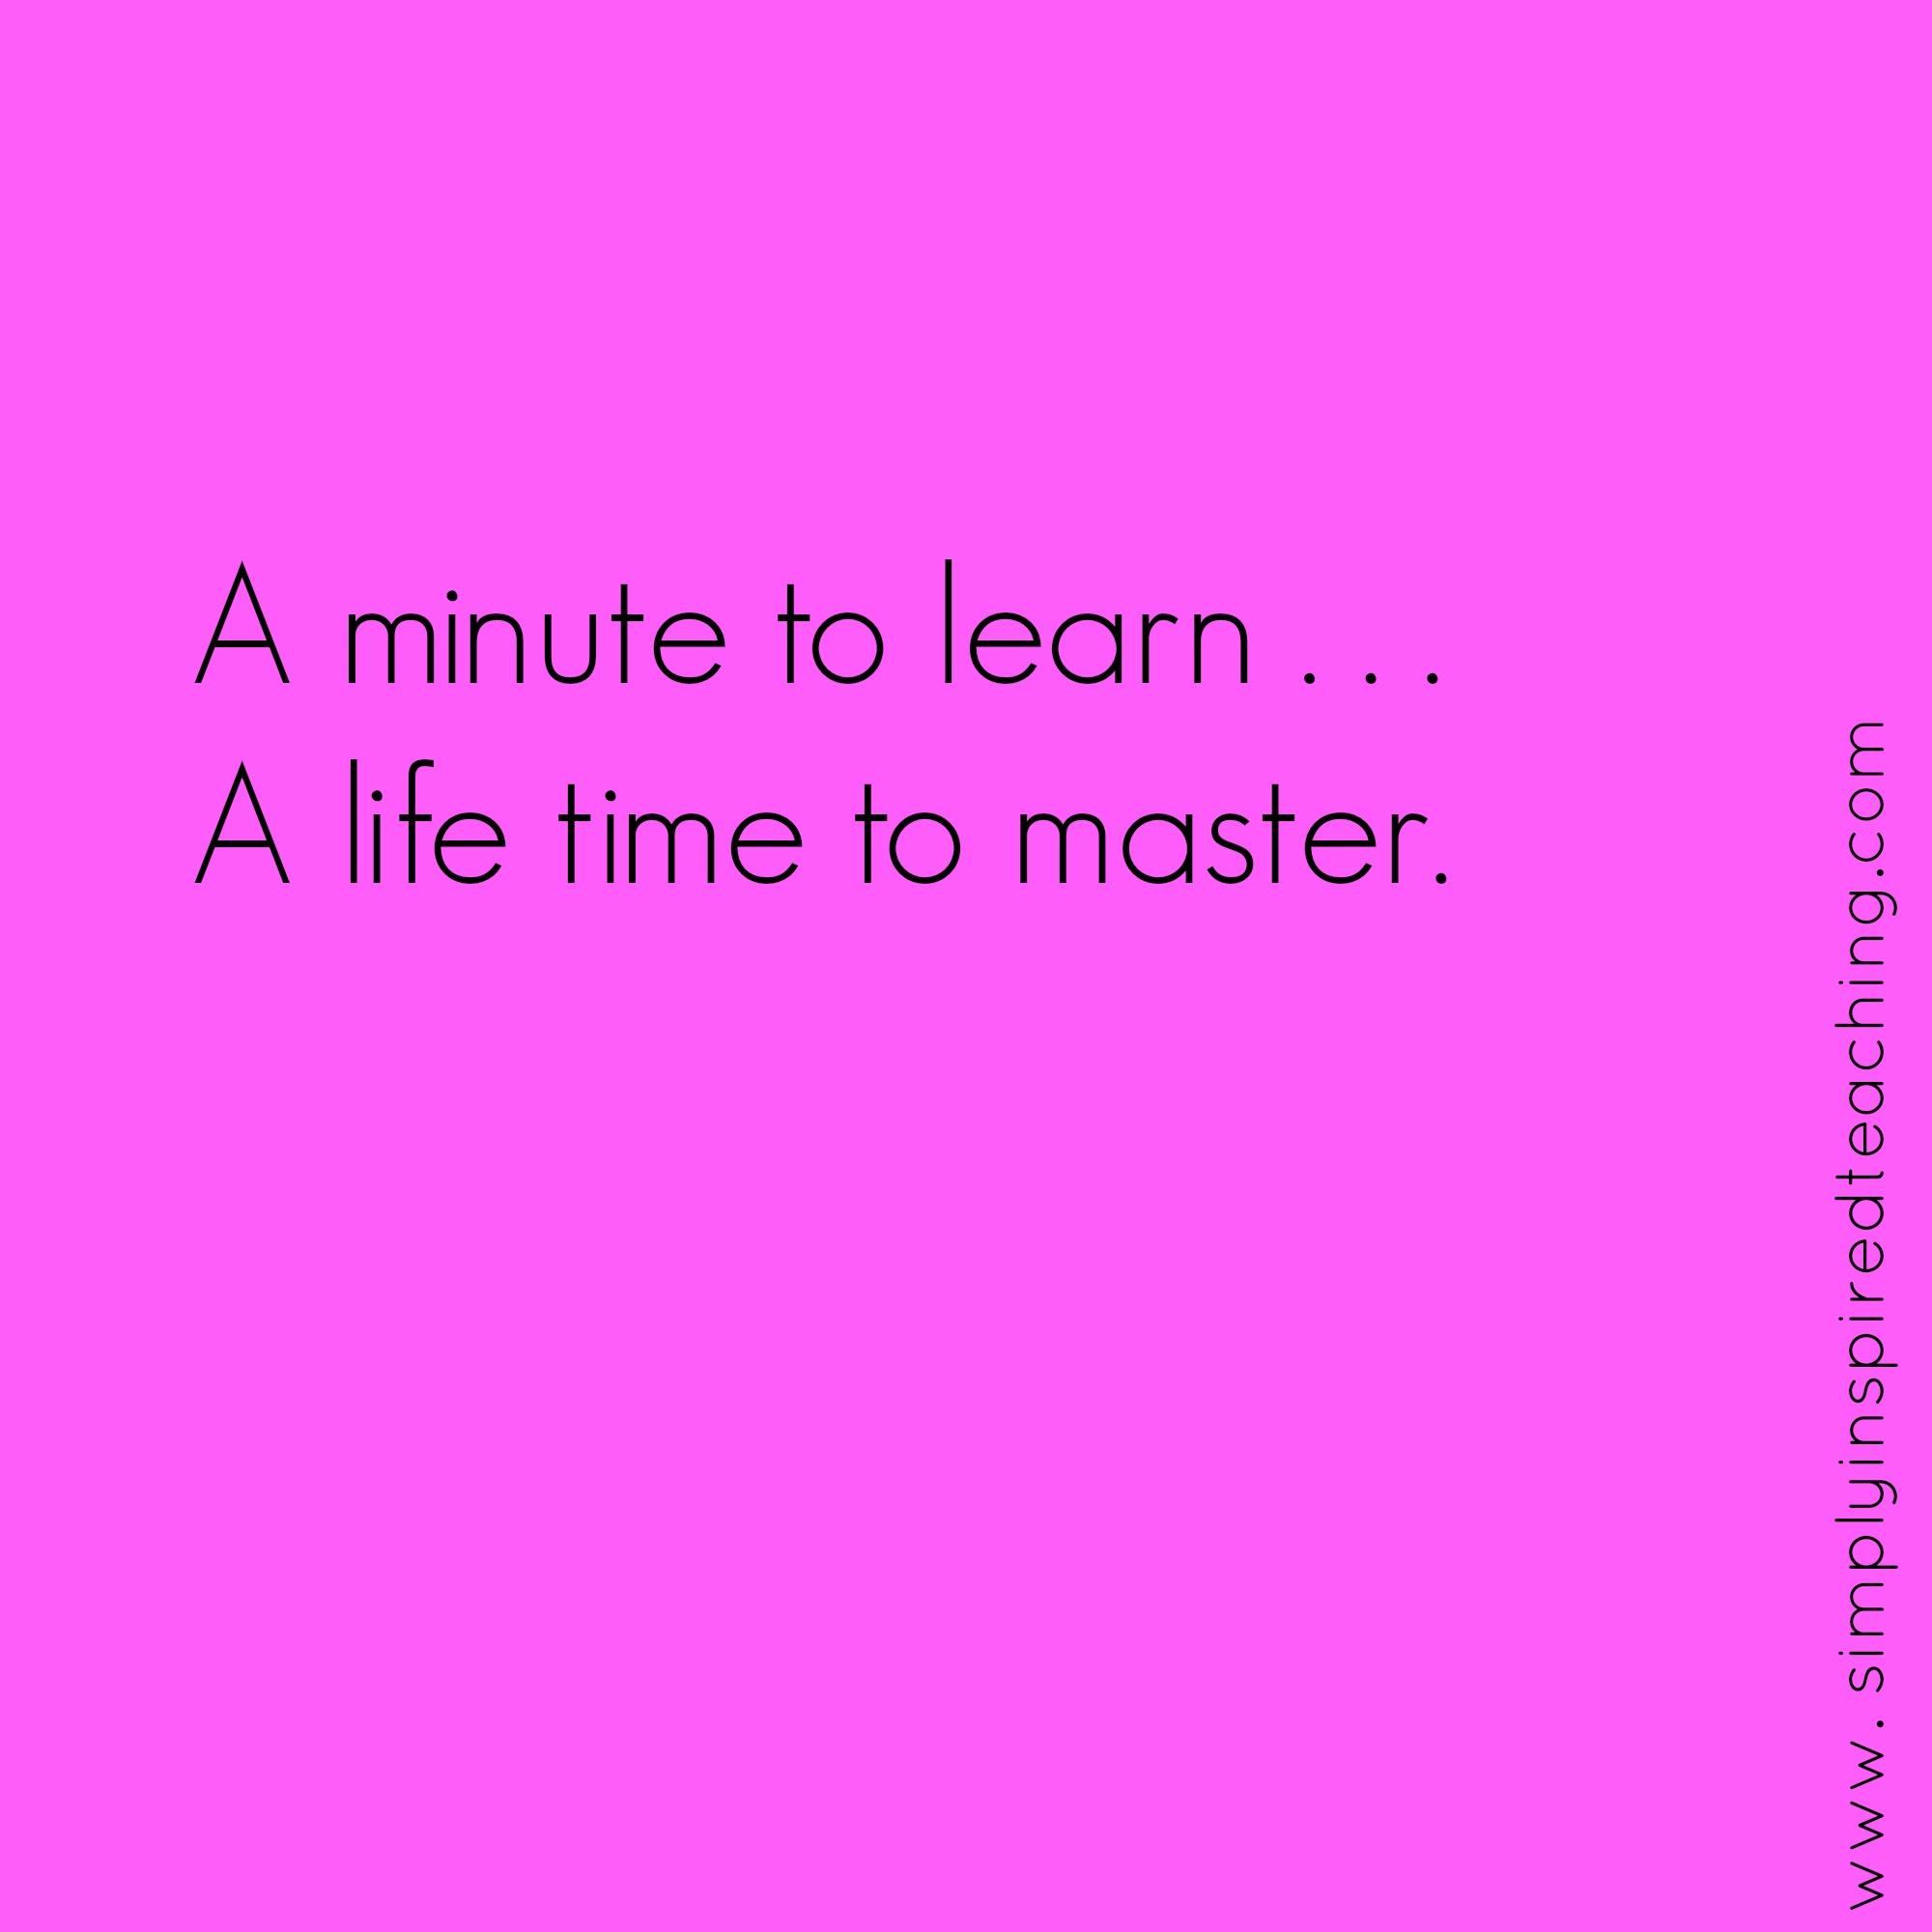 A Minute to Learn, A Lifetime to Master